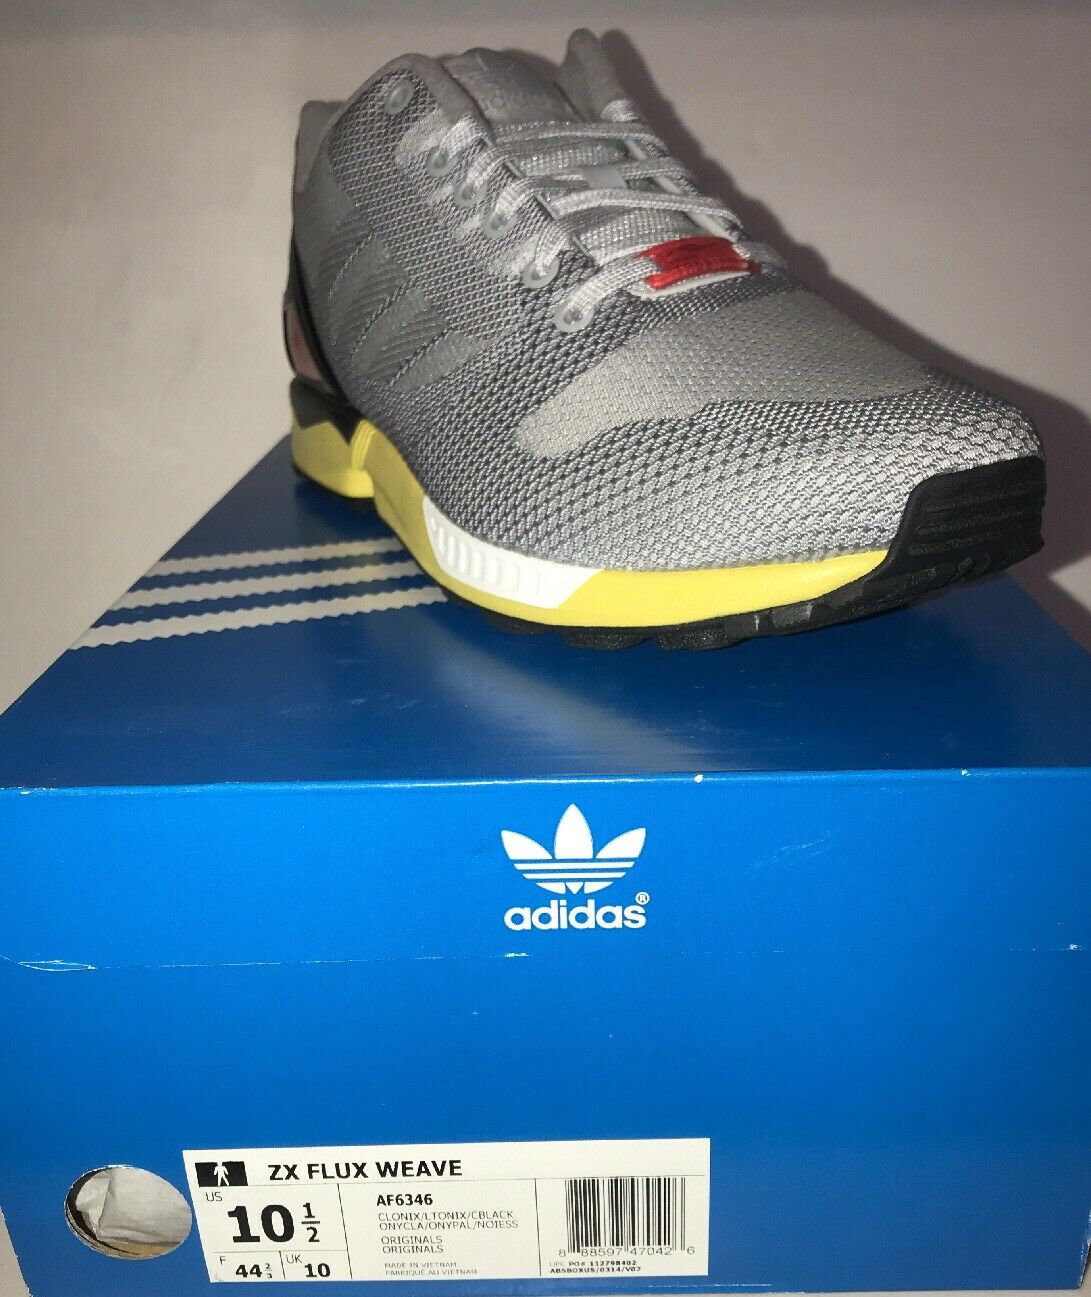 Adidas Mens' (Sz 10.5) Originals ZX Flux Weave shoes, Onix Yellow Black (AF6346)